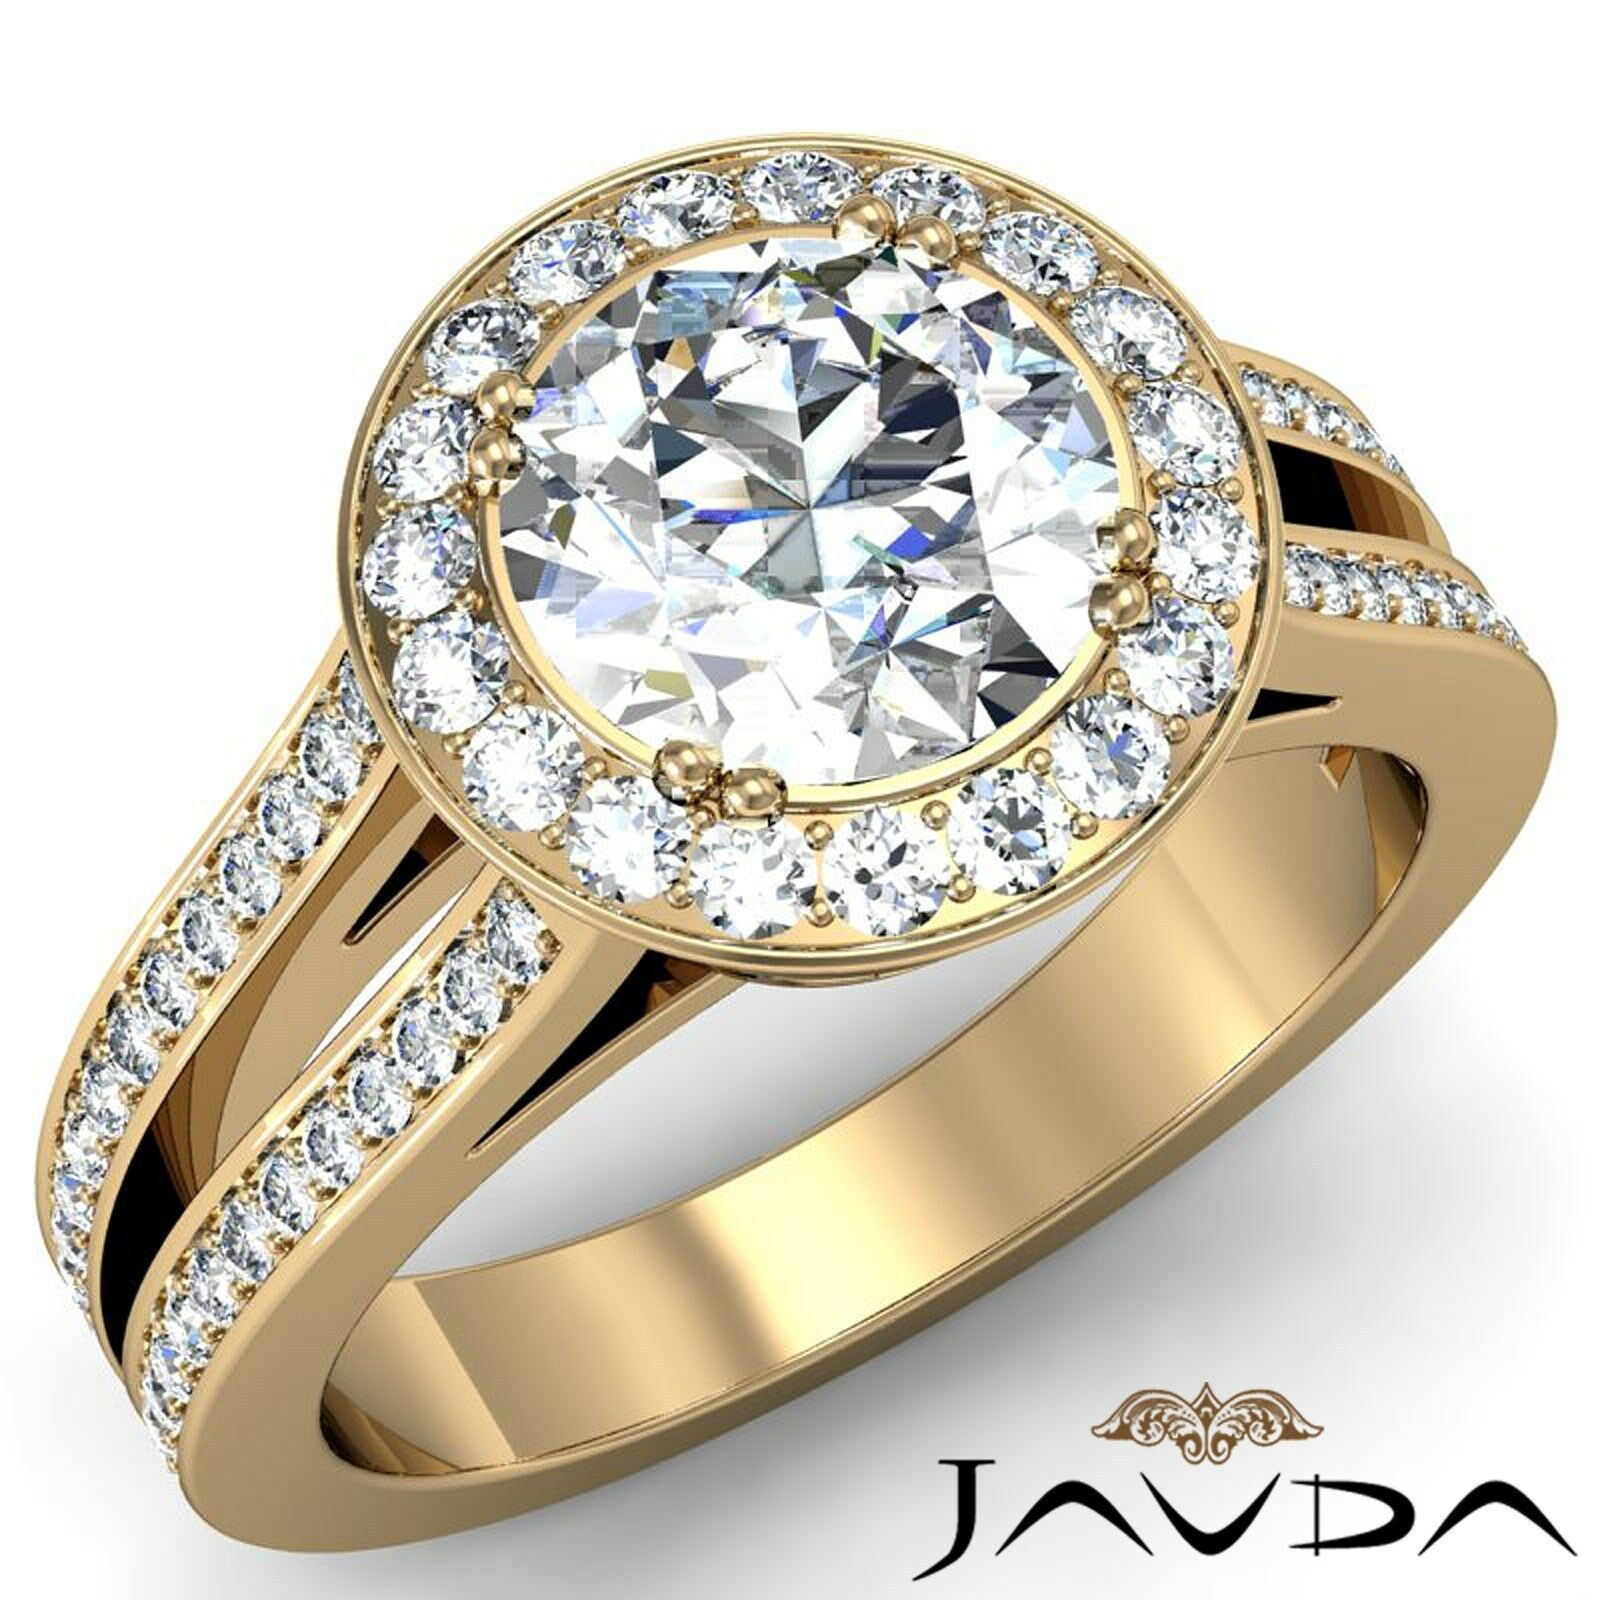 Halo Split Shank Double Prong Round Cut Diamond Engagement Ring GIA H VS1 2.35Ct